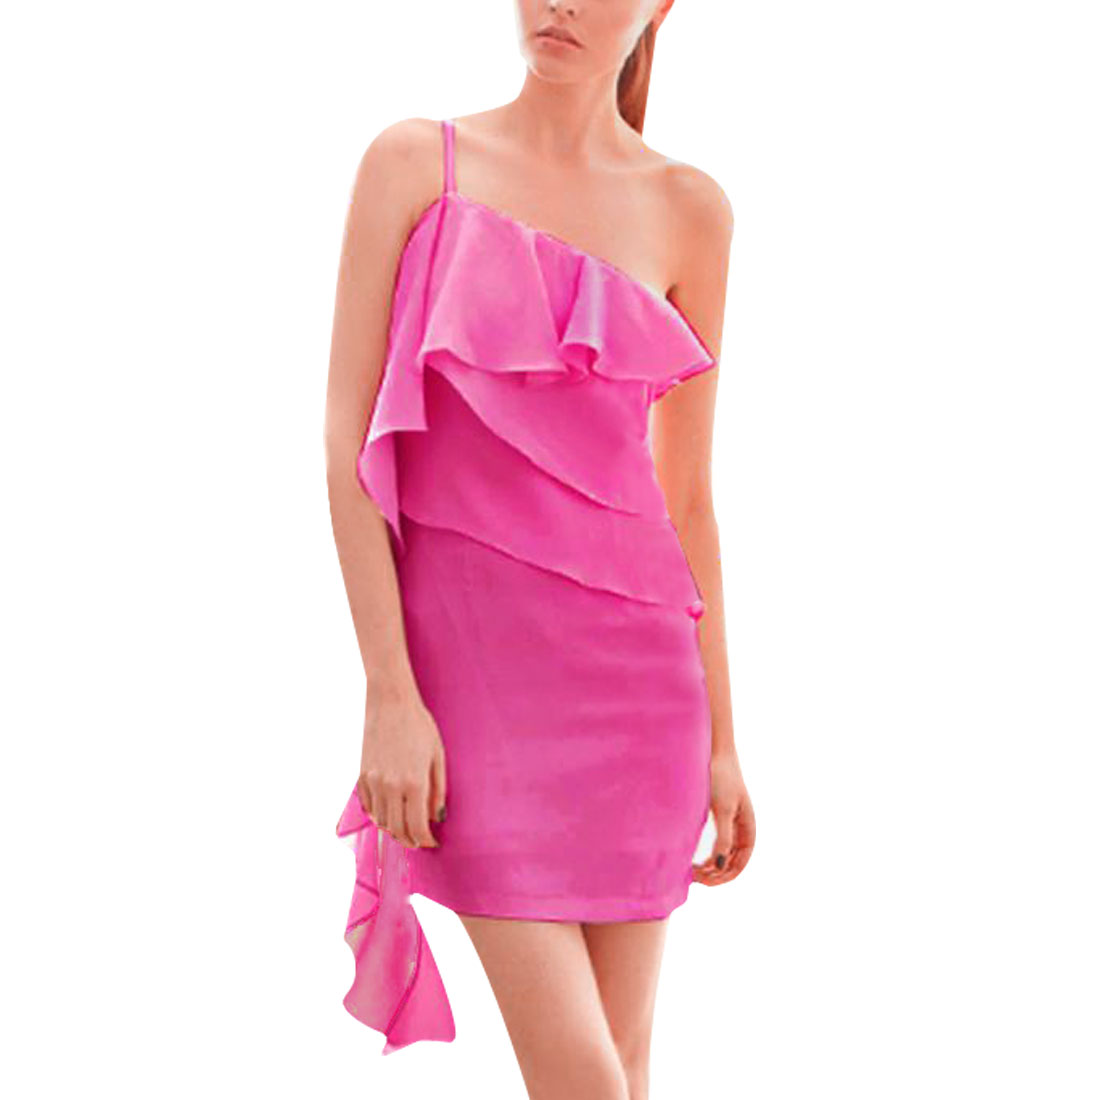 Adjustable Shoulder Strap Flounce Hem Detail Mini Dress Fuchsia XS for Ladies